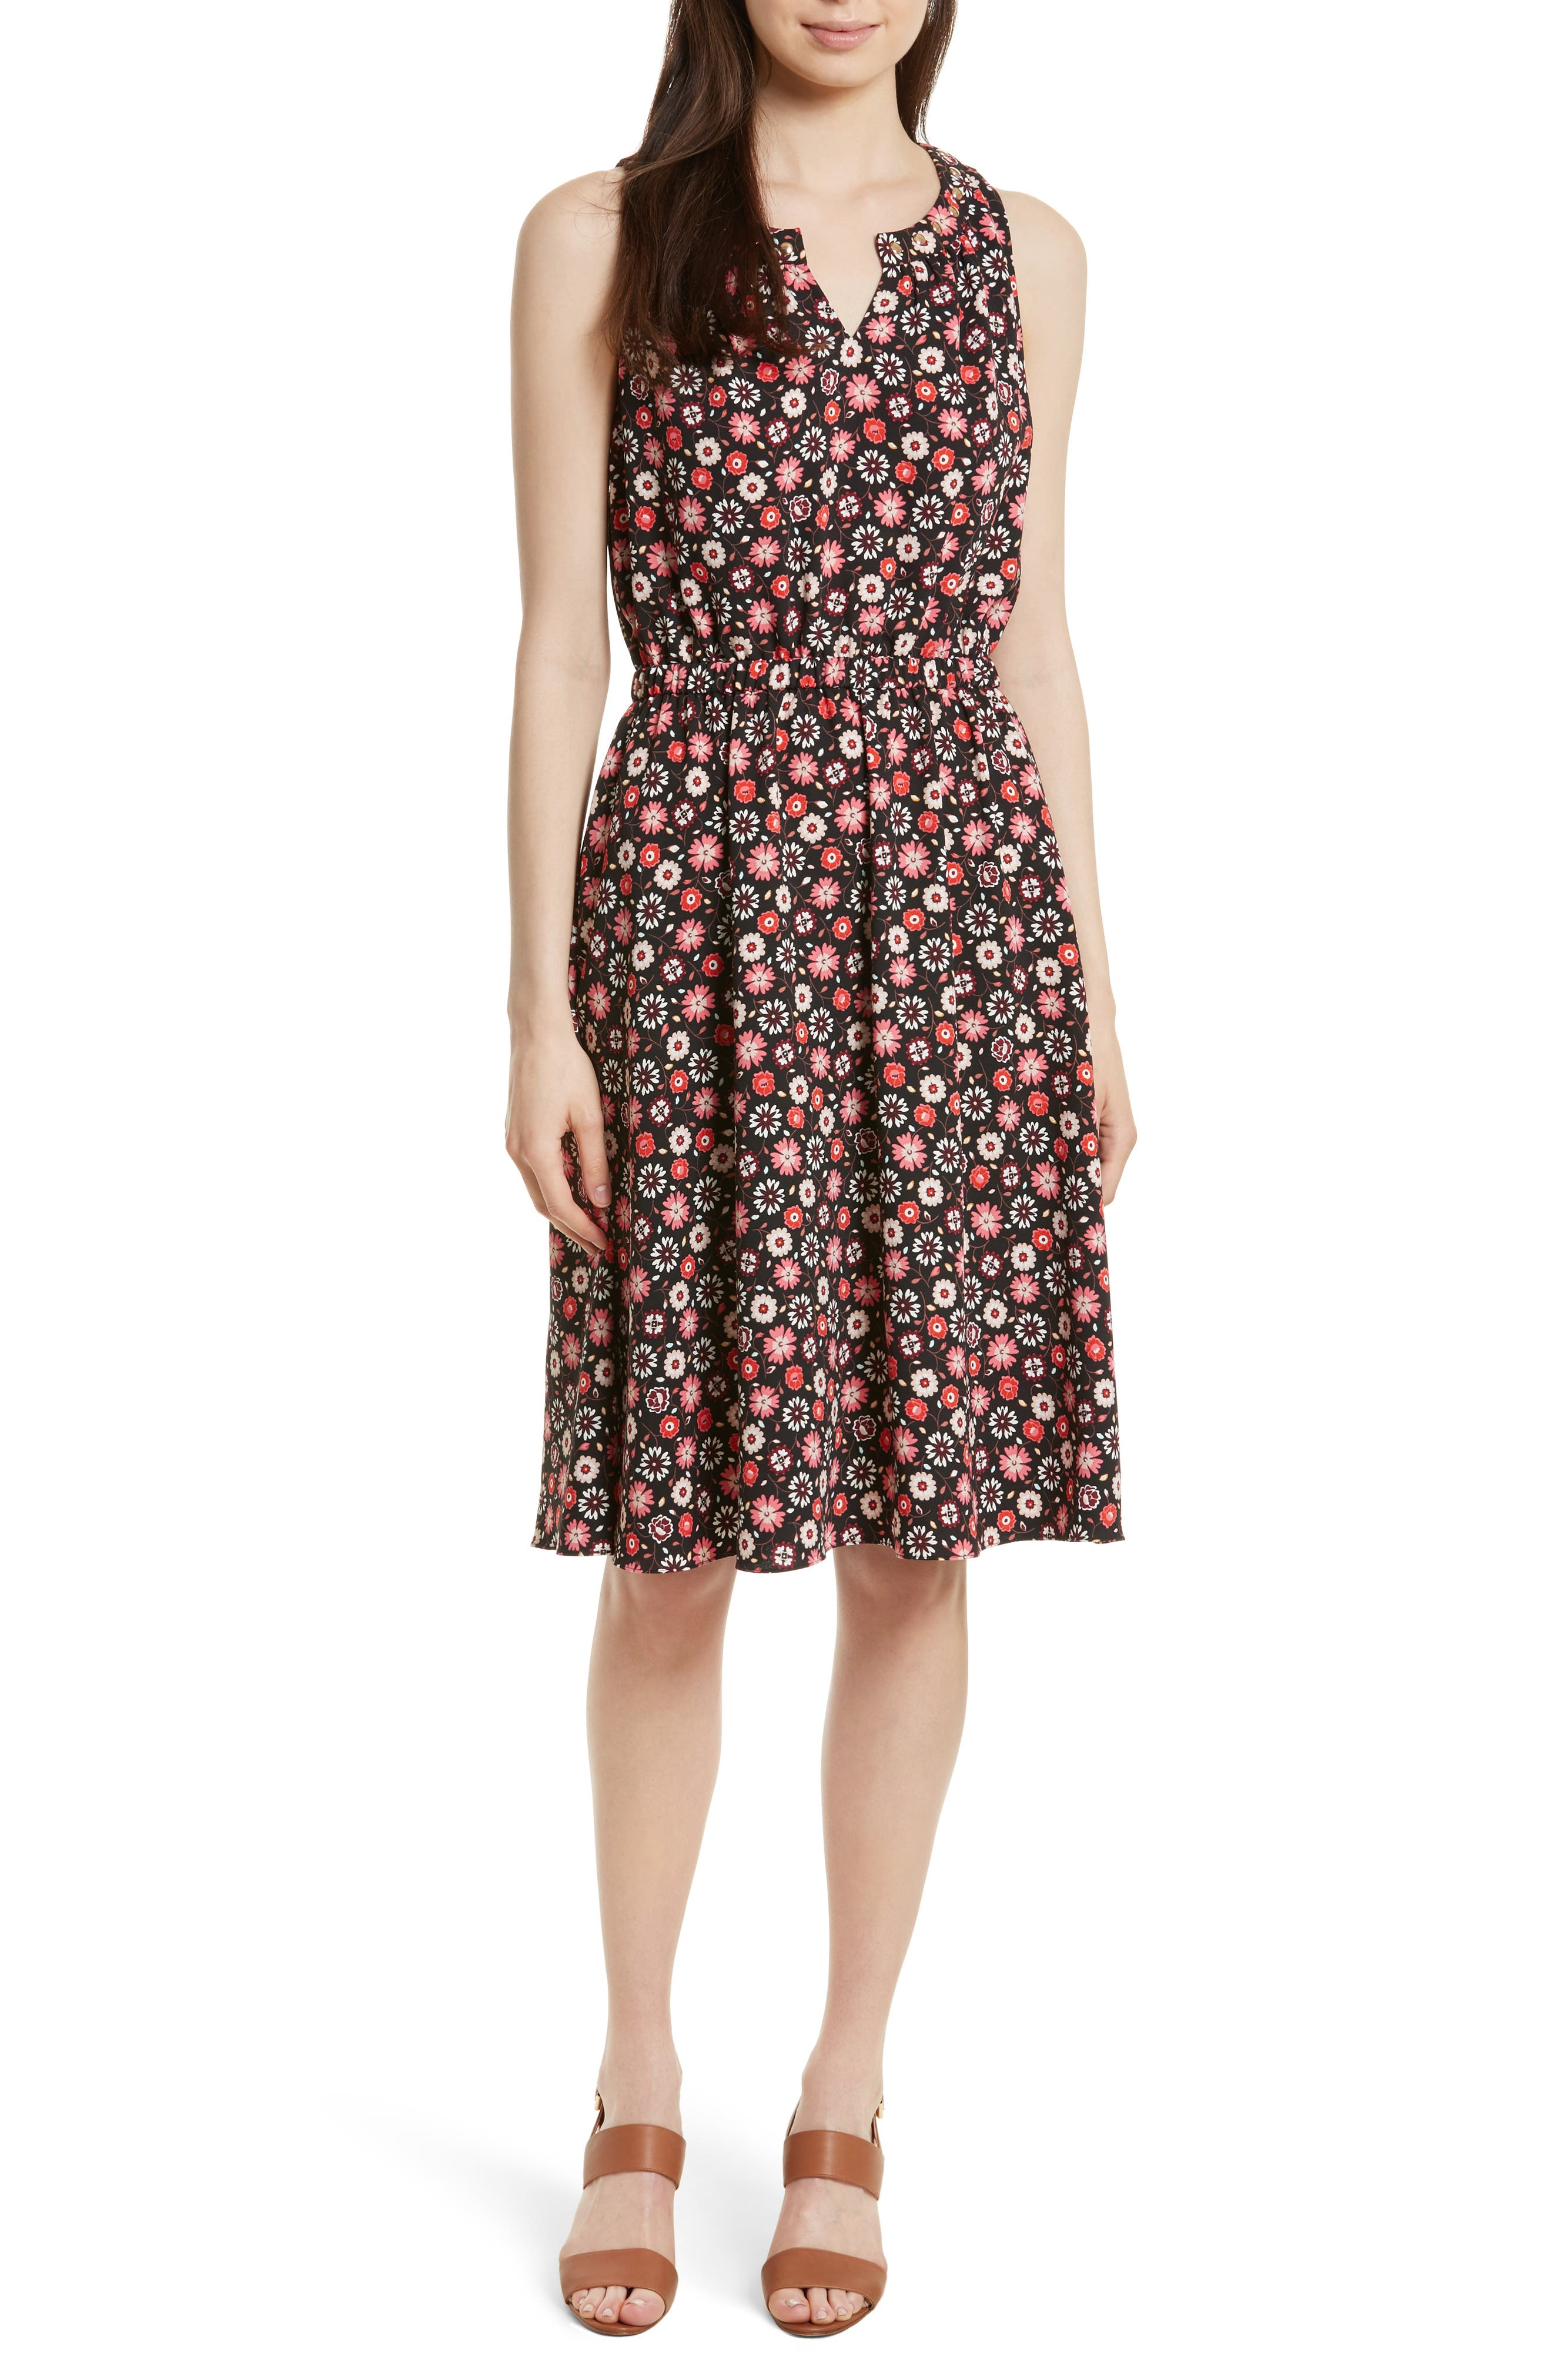 KATE SPADE NEW YORK casa flora a-line dress